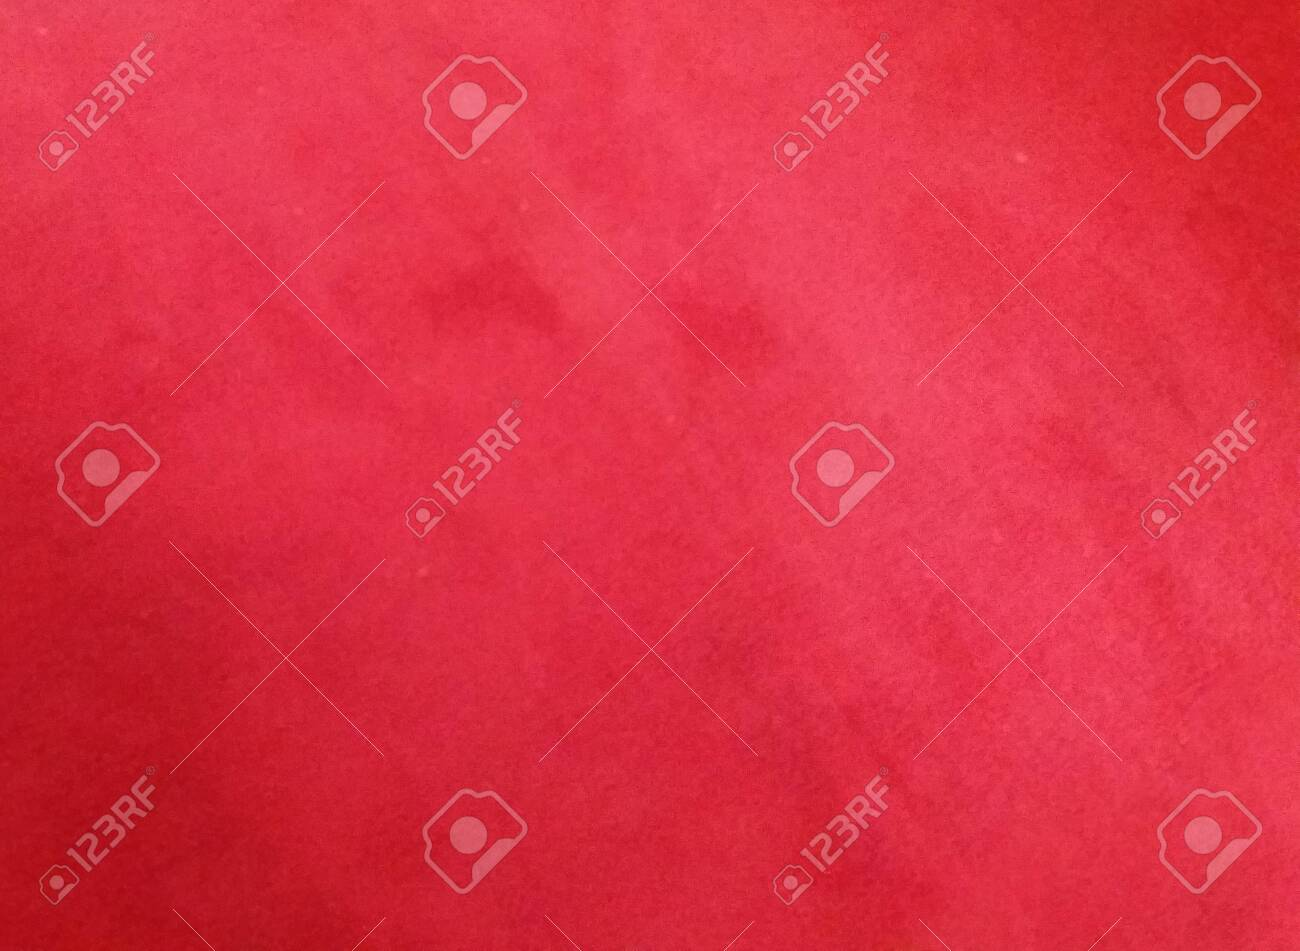 red nonwoven polypropylene fabric surface useful as a background - 134639791